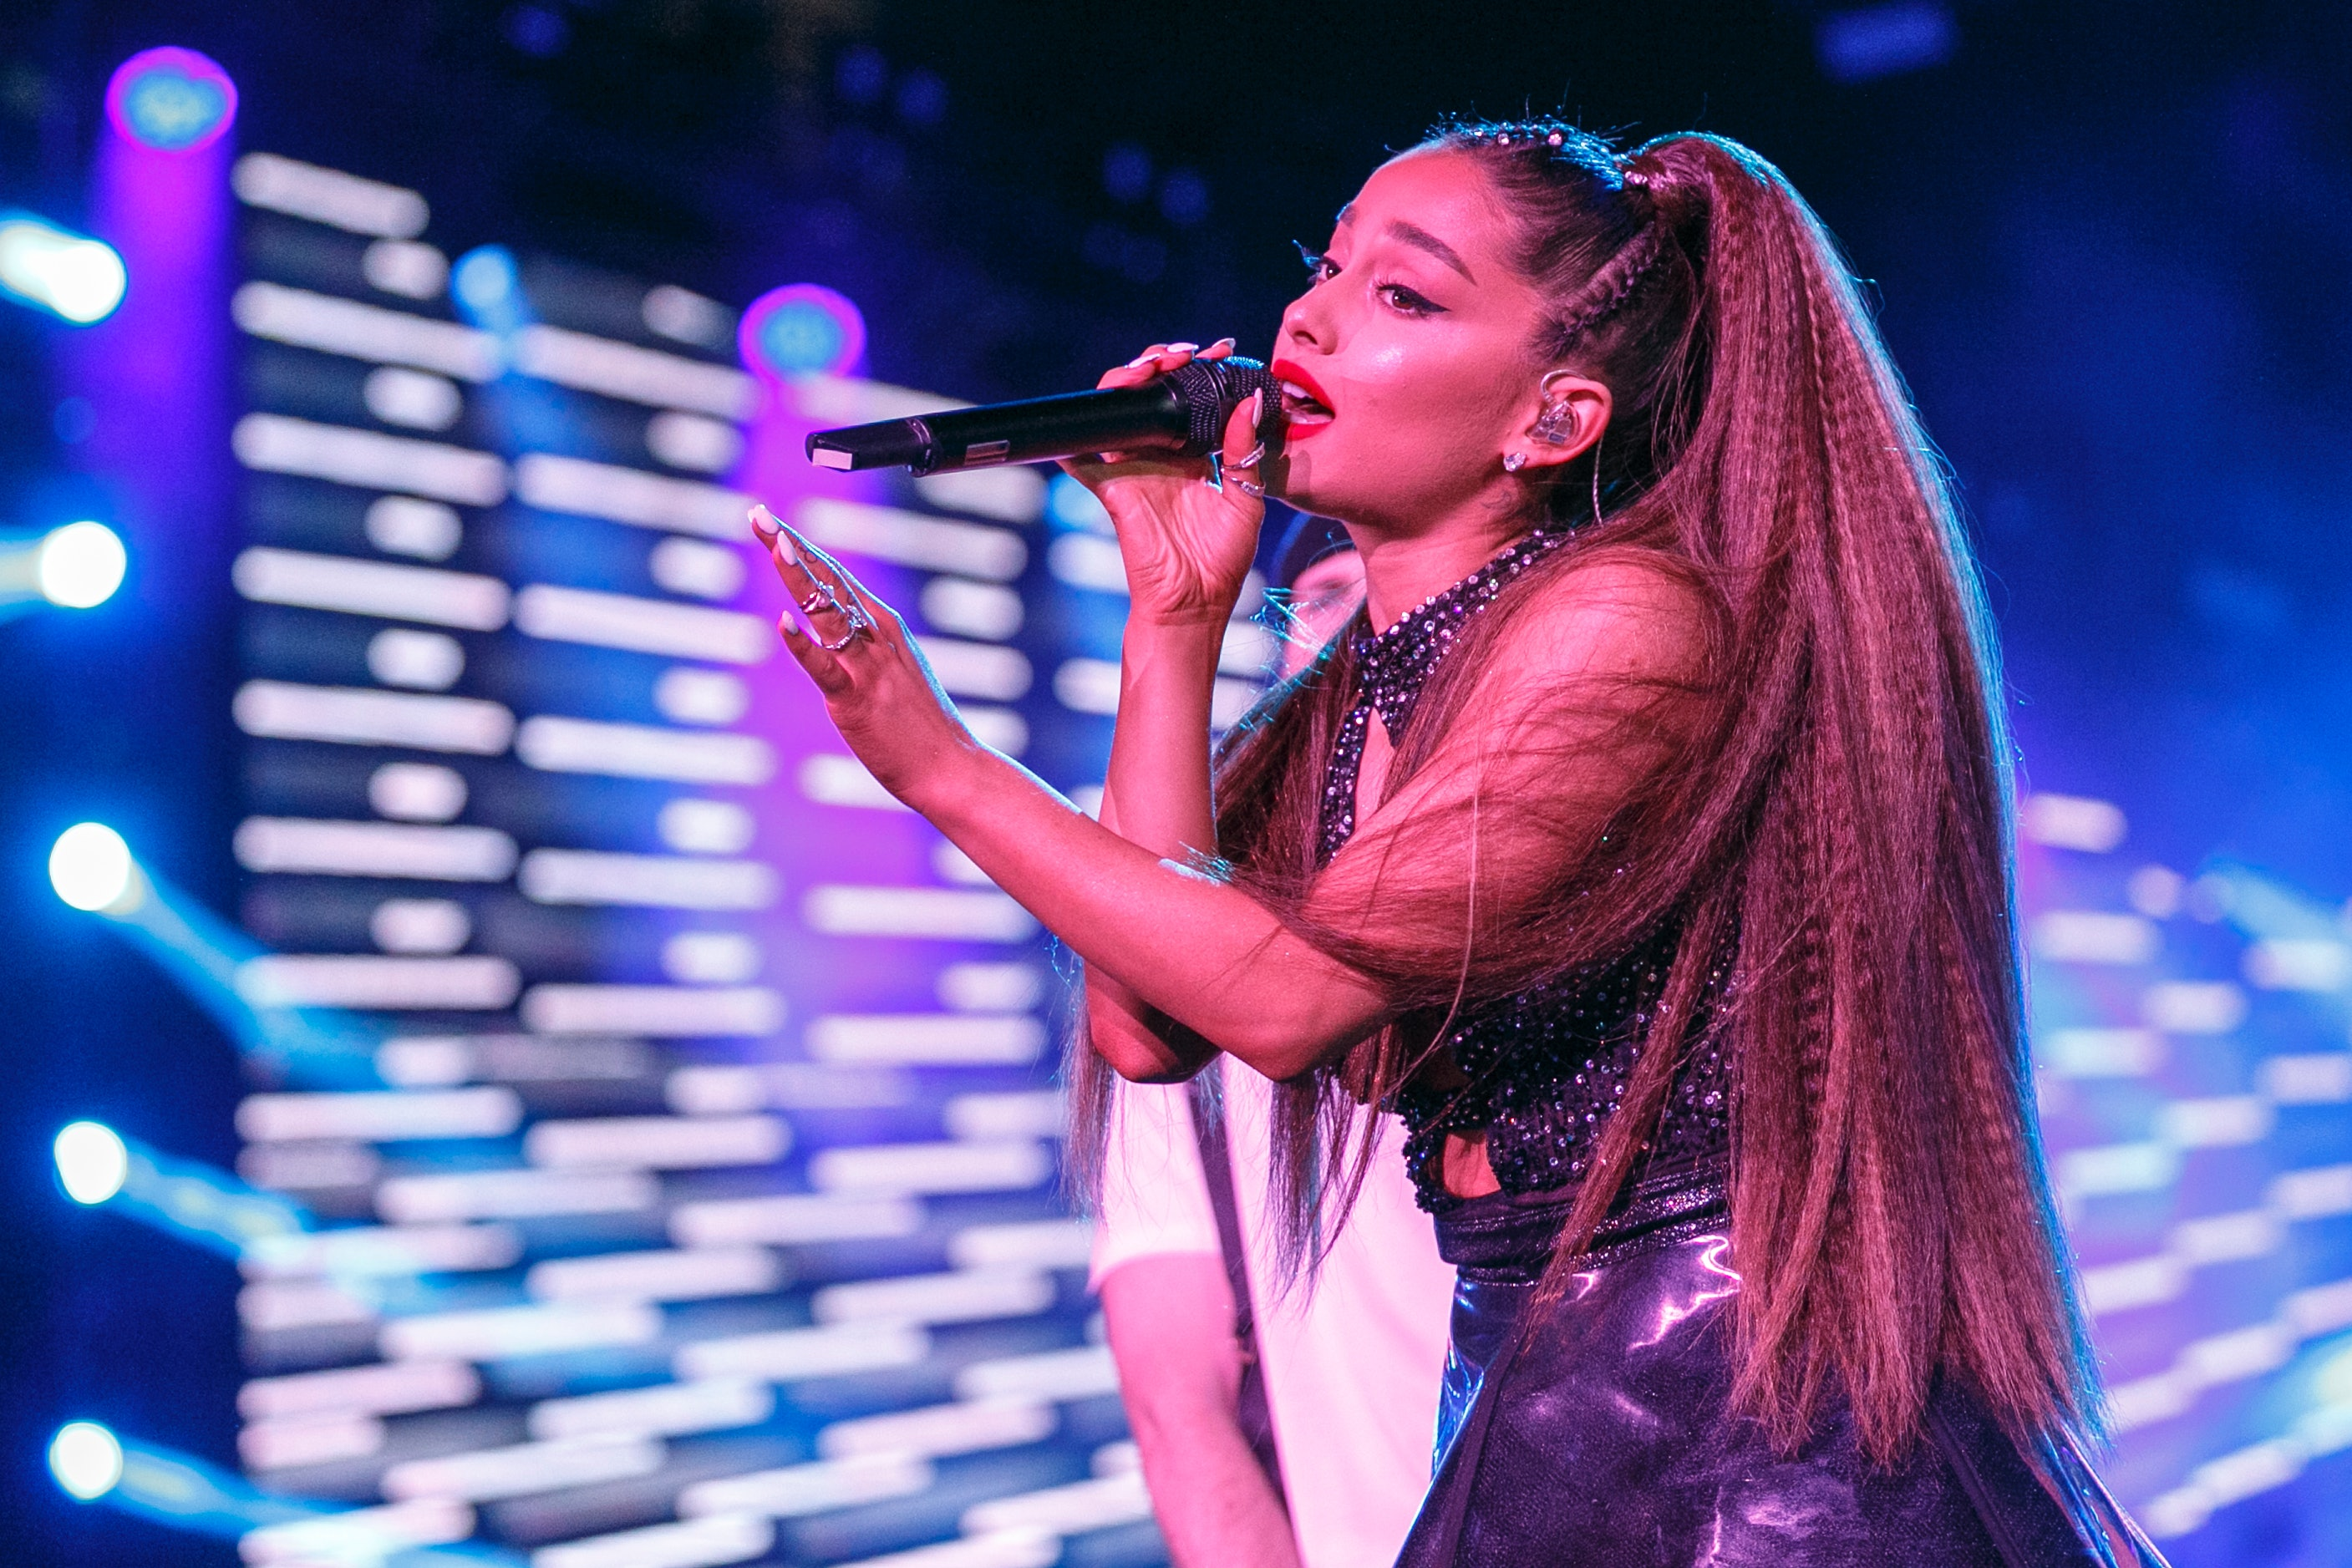 Ariana Grande's 'Thank U, Next' Album Cover Reveal Teased A